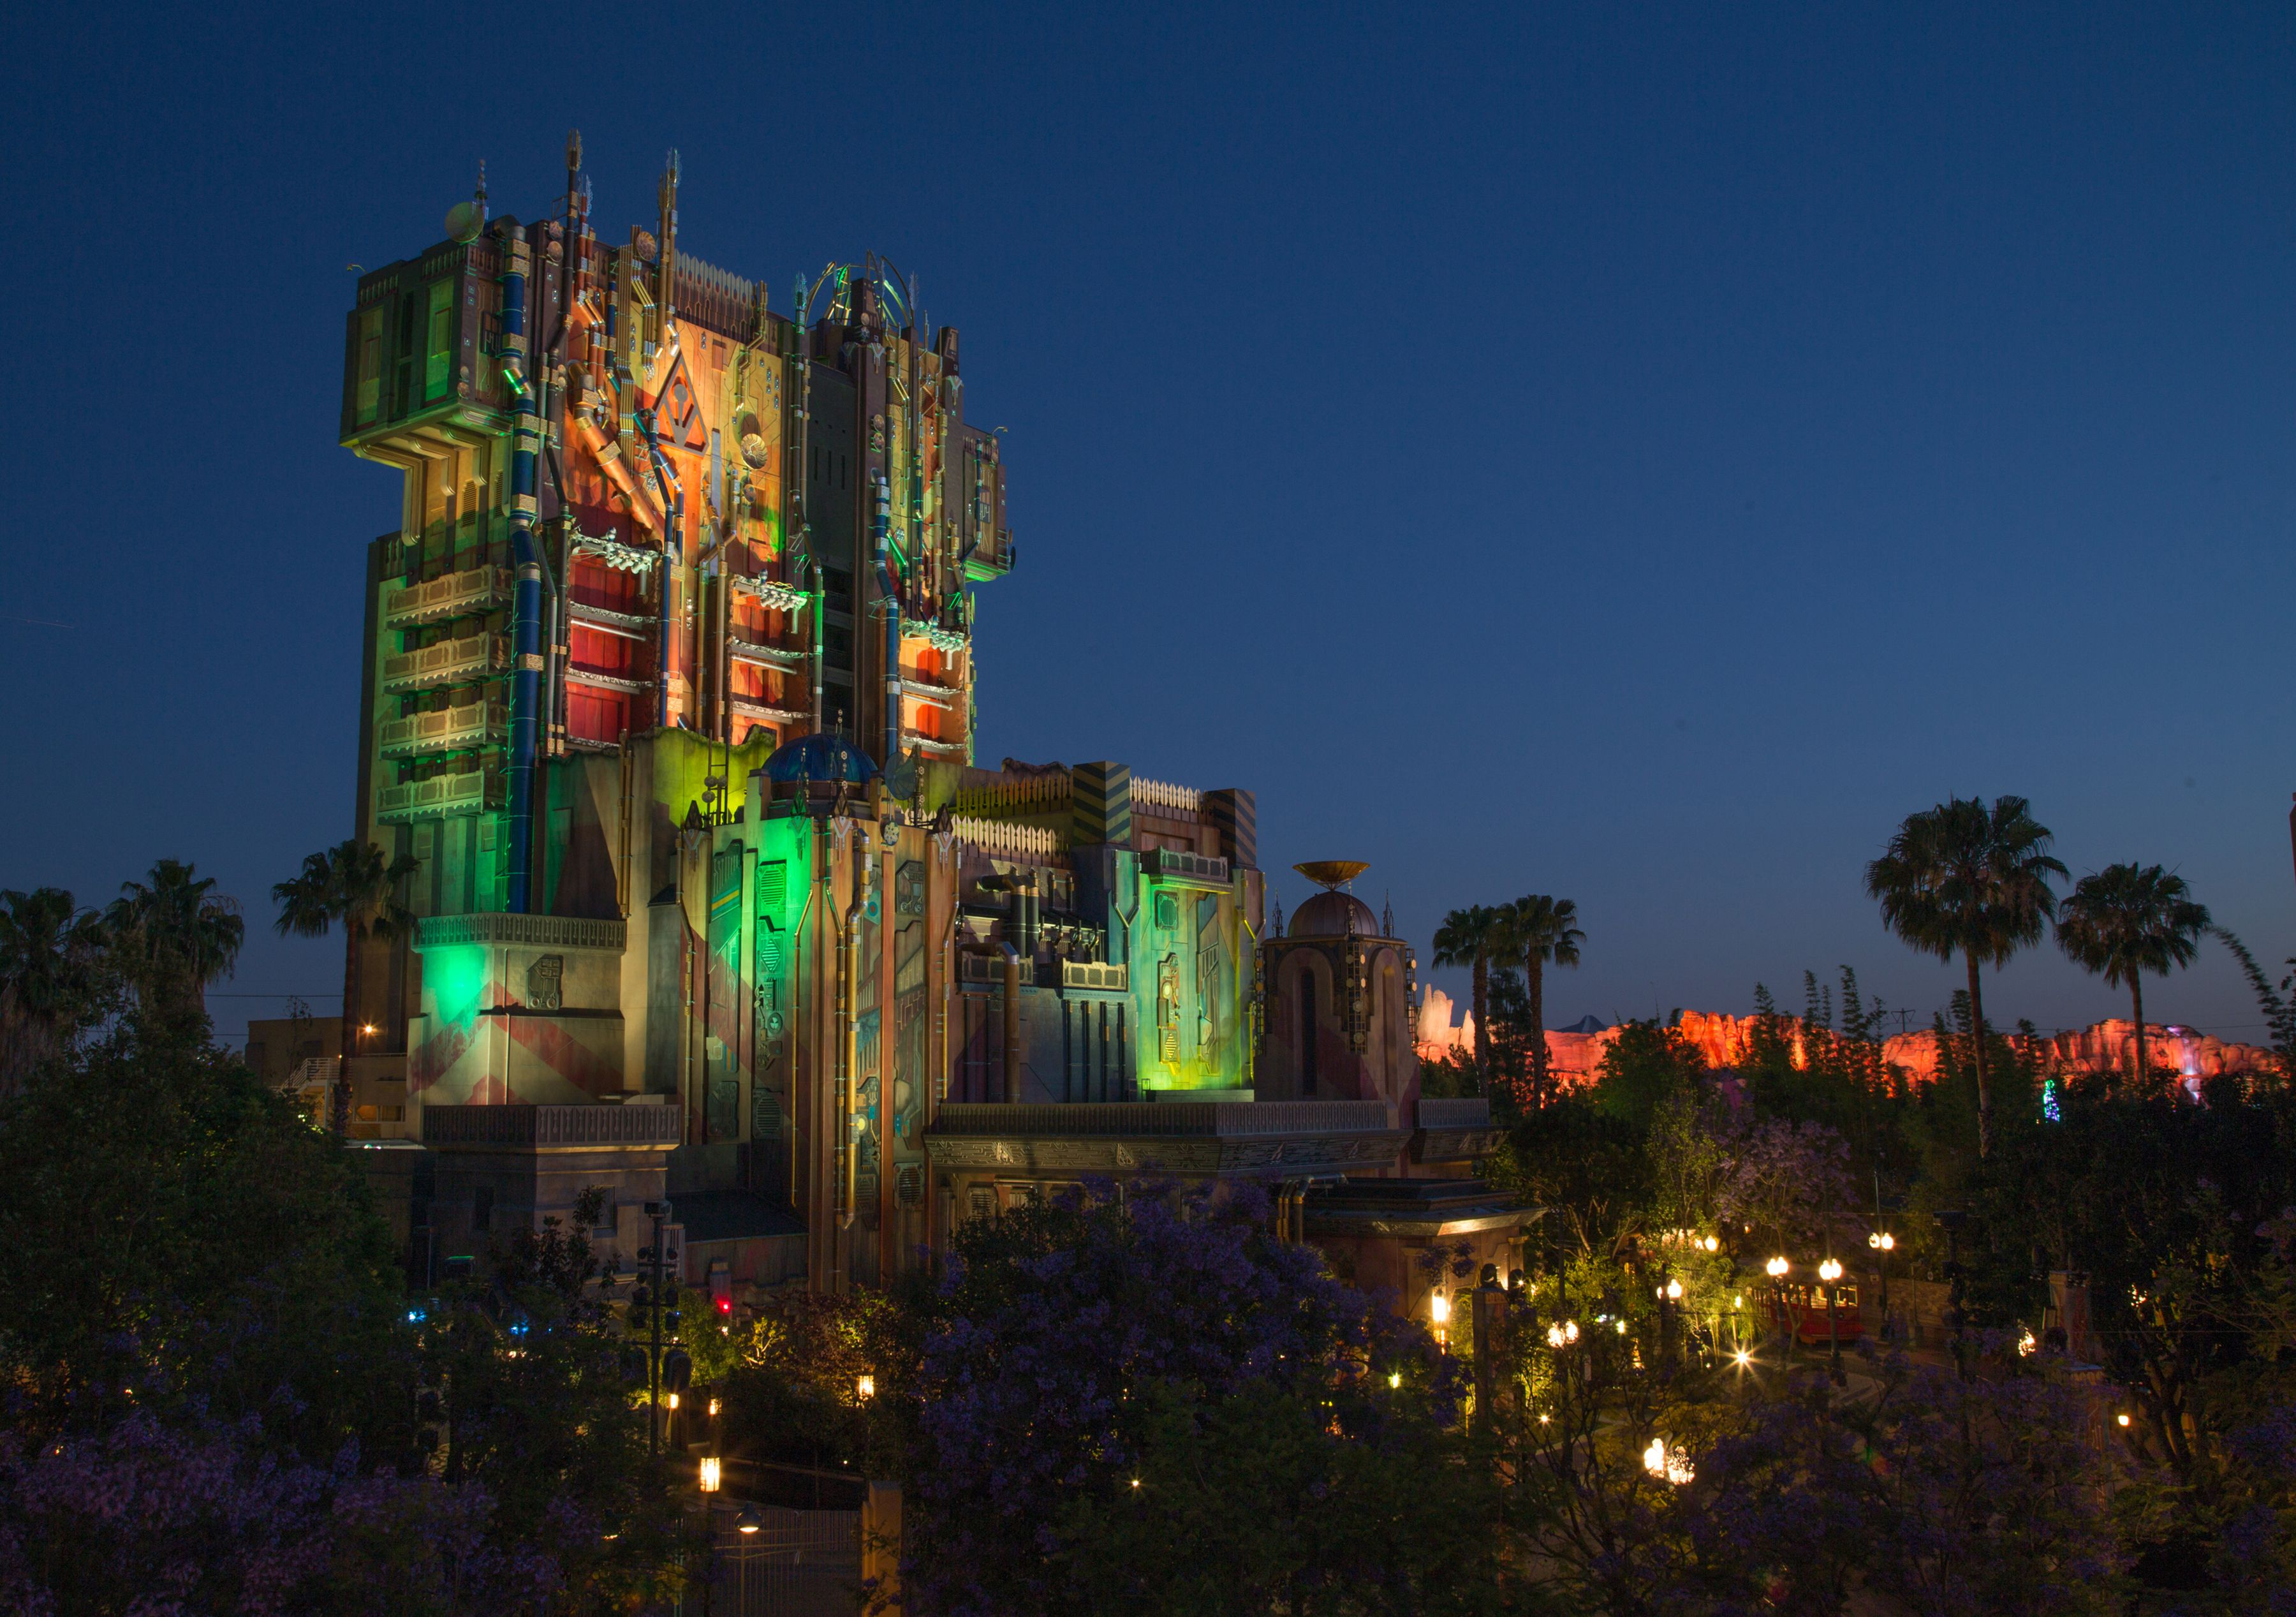 Guardians of the Galaxy–Mission BREAKOUT!